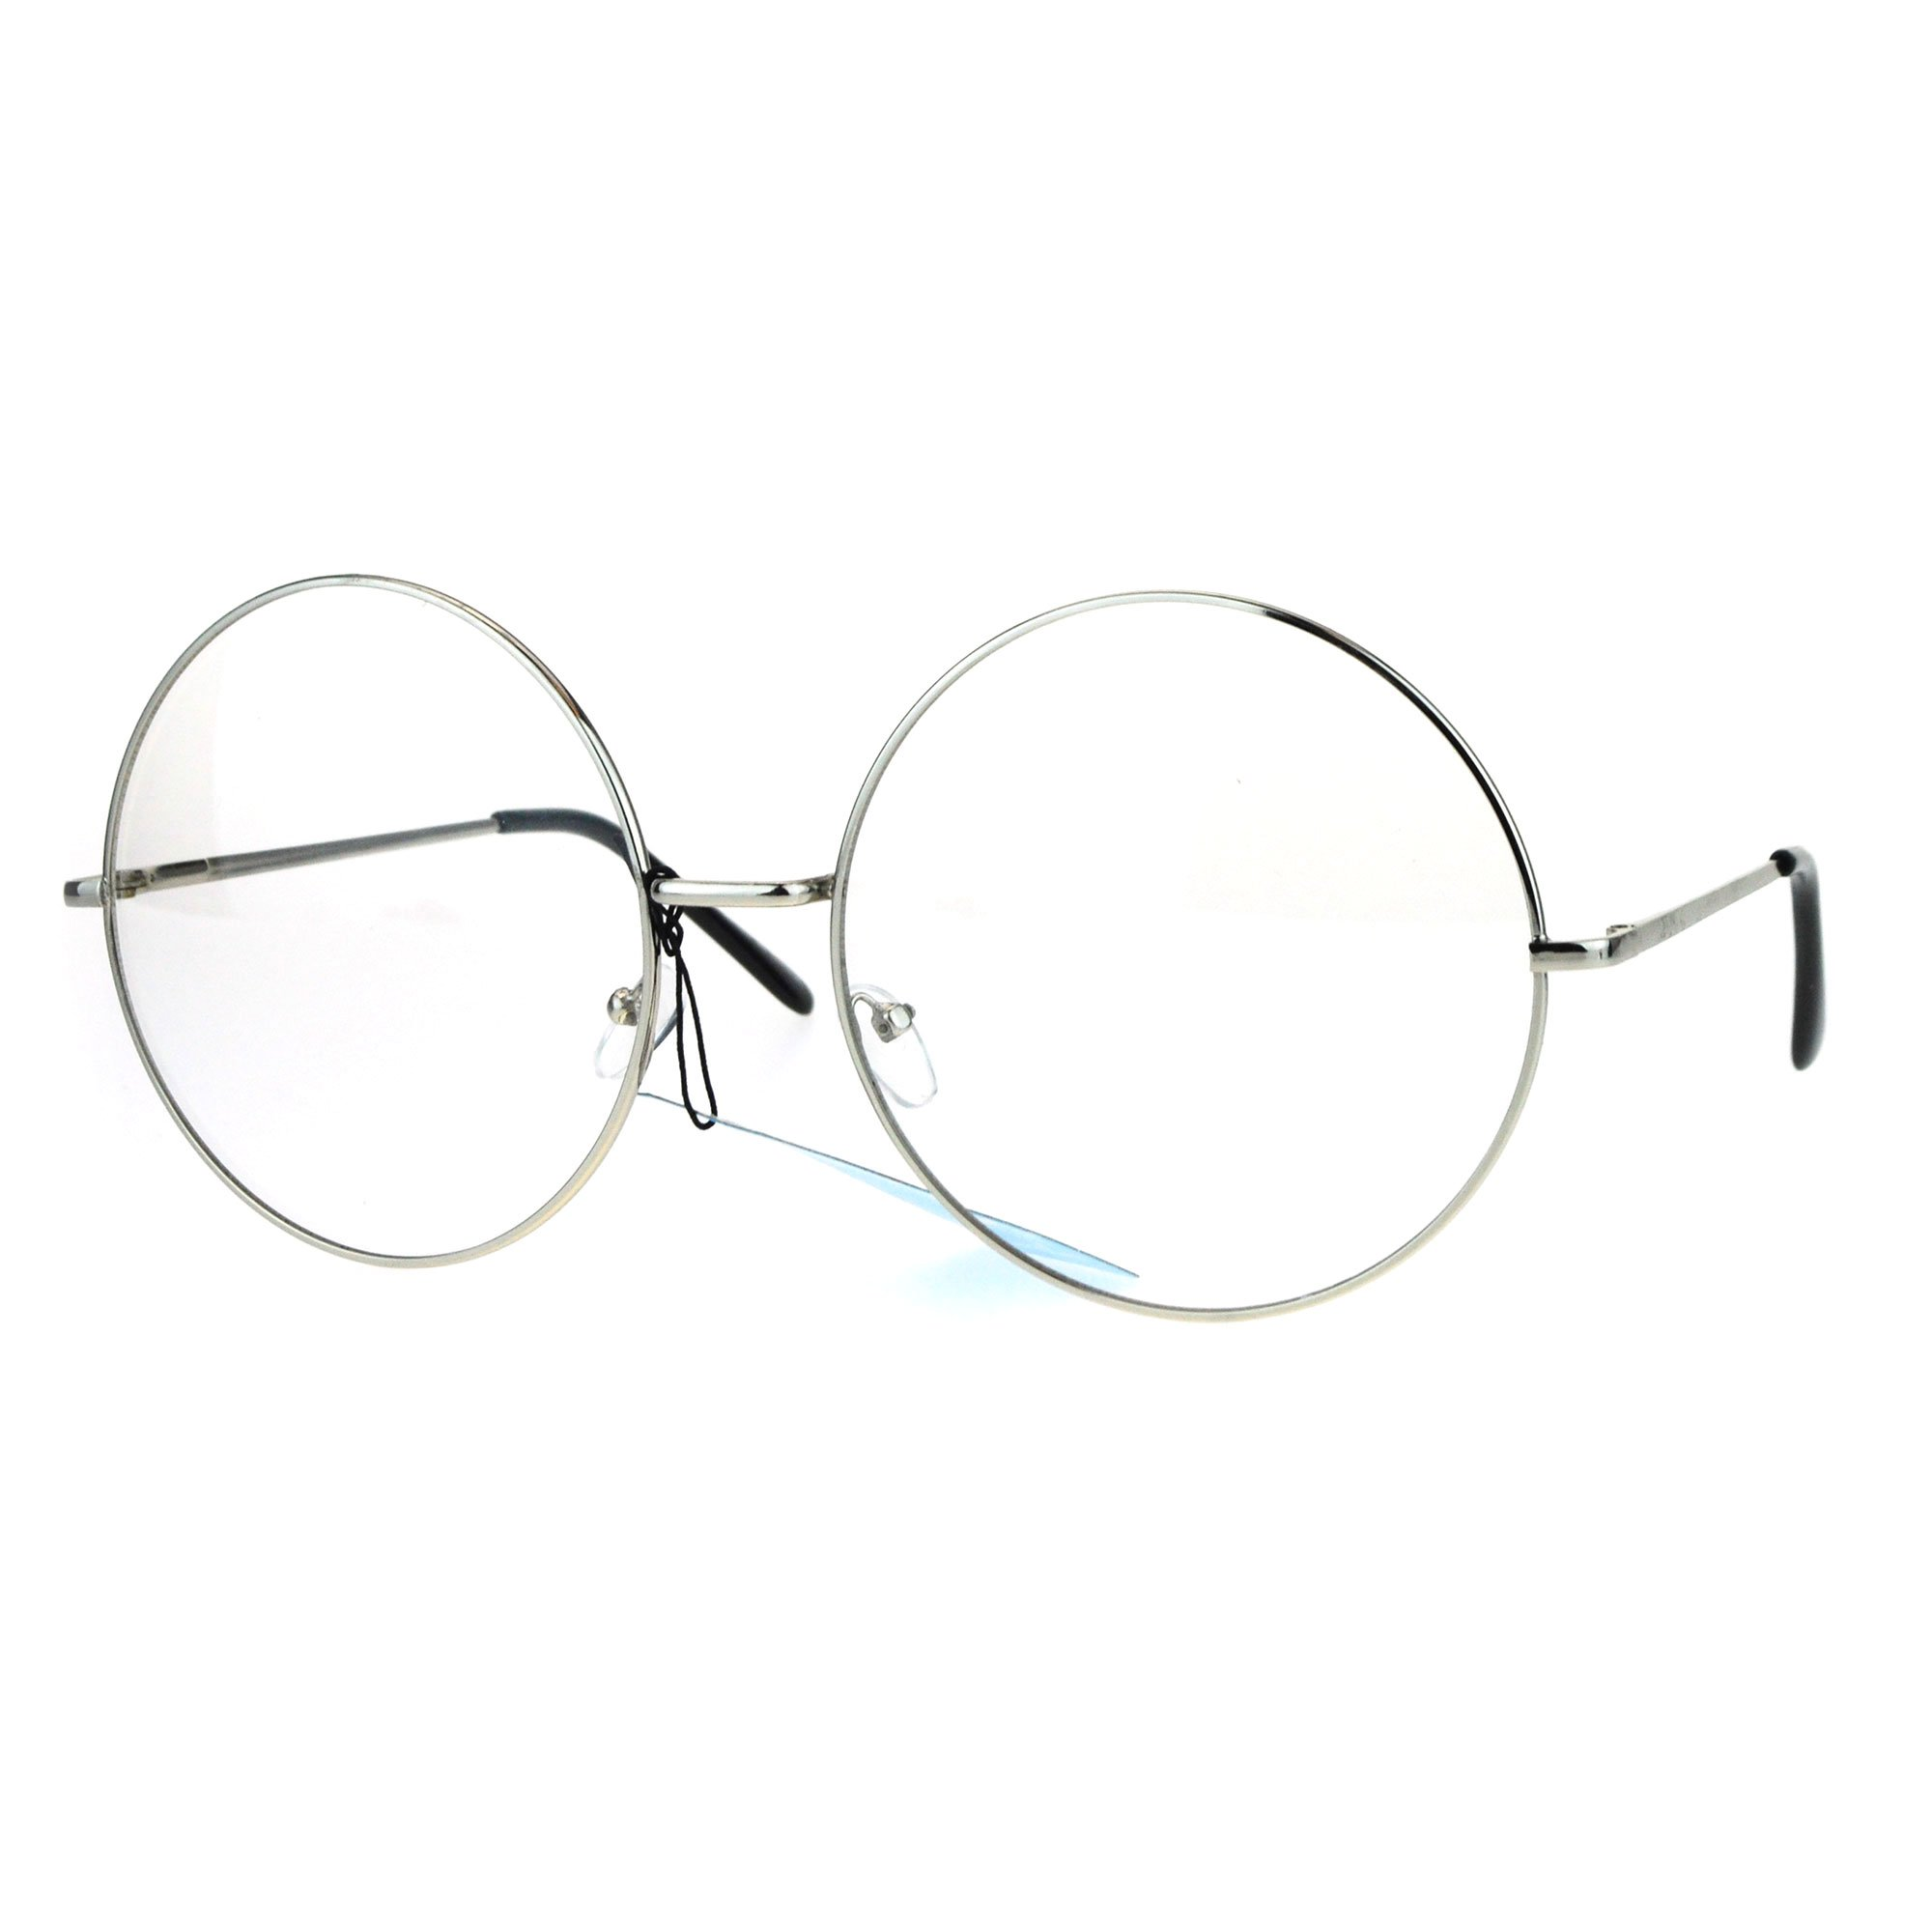 circle clear glasses - Google Search